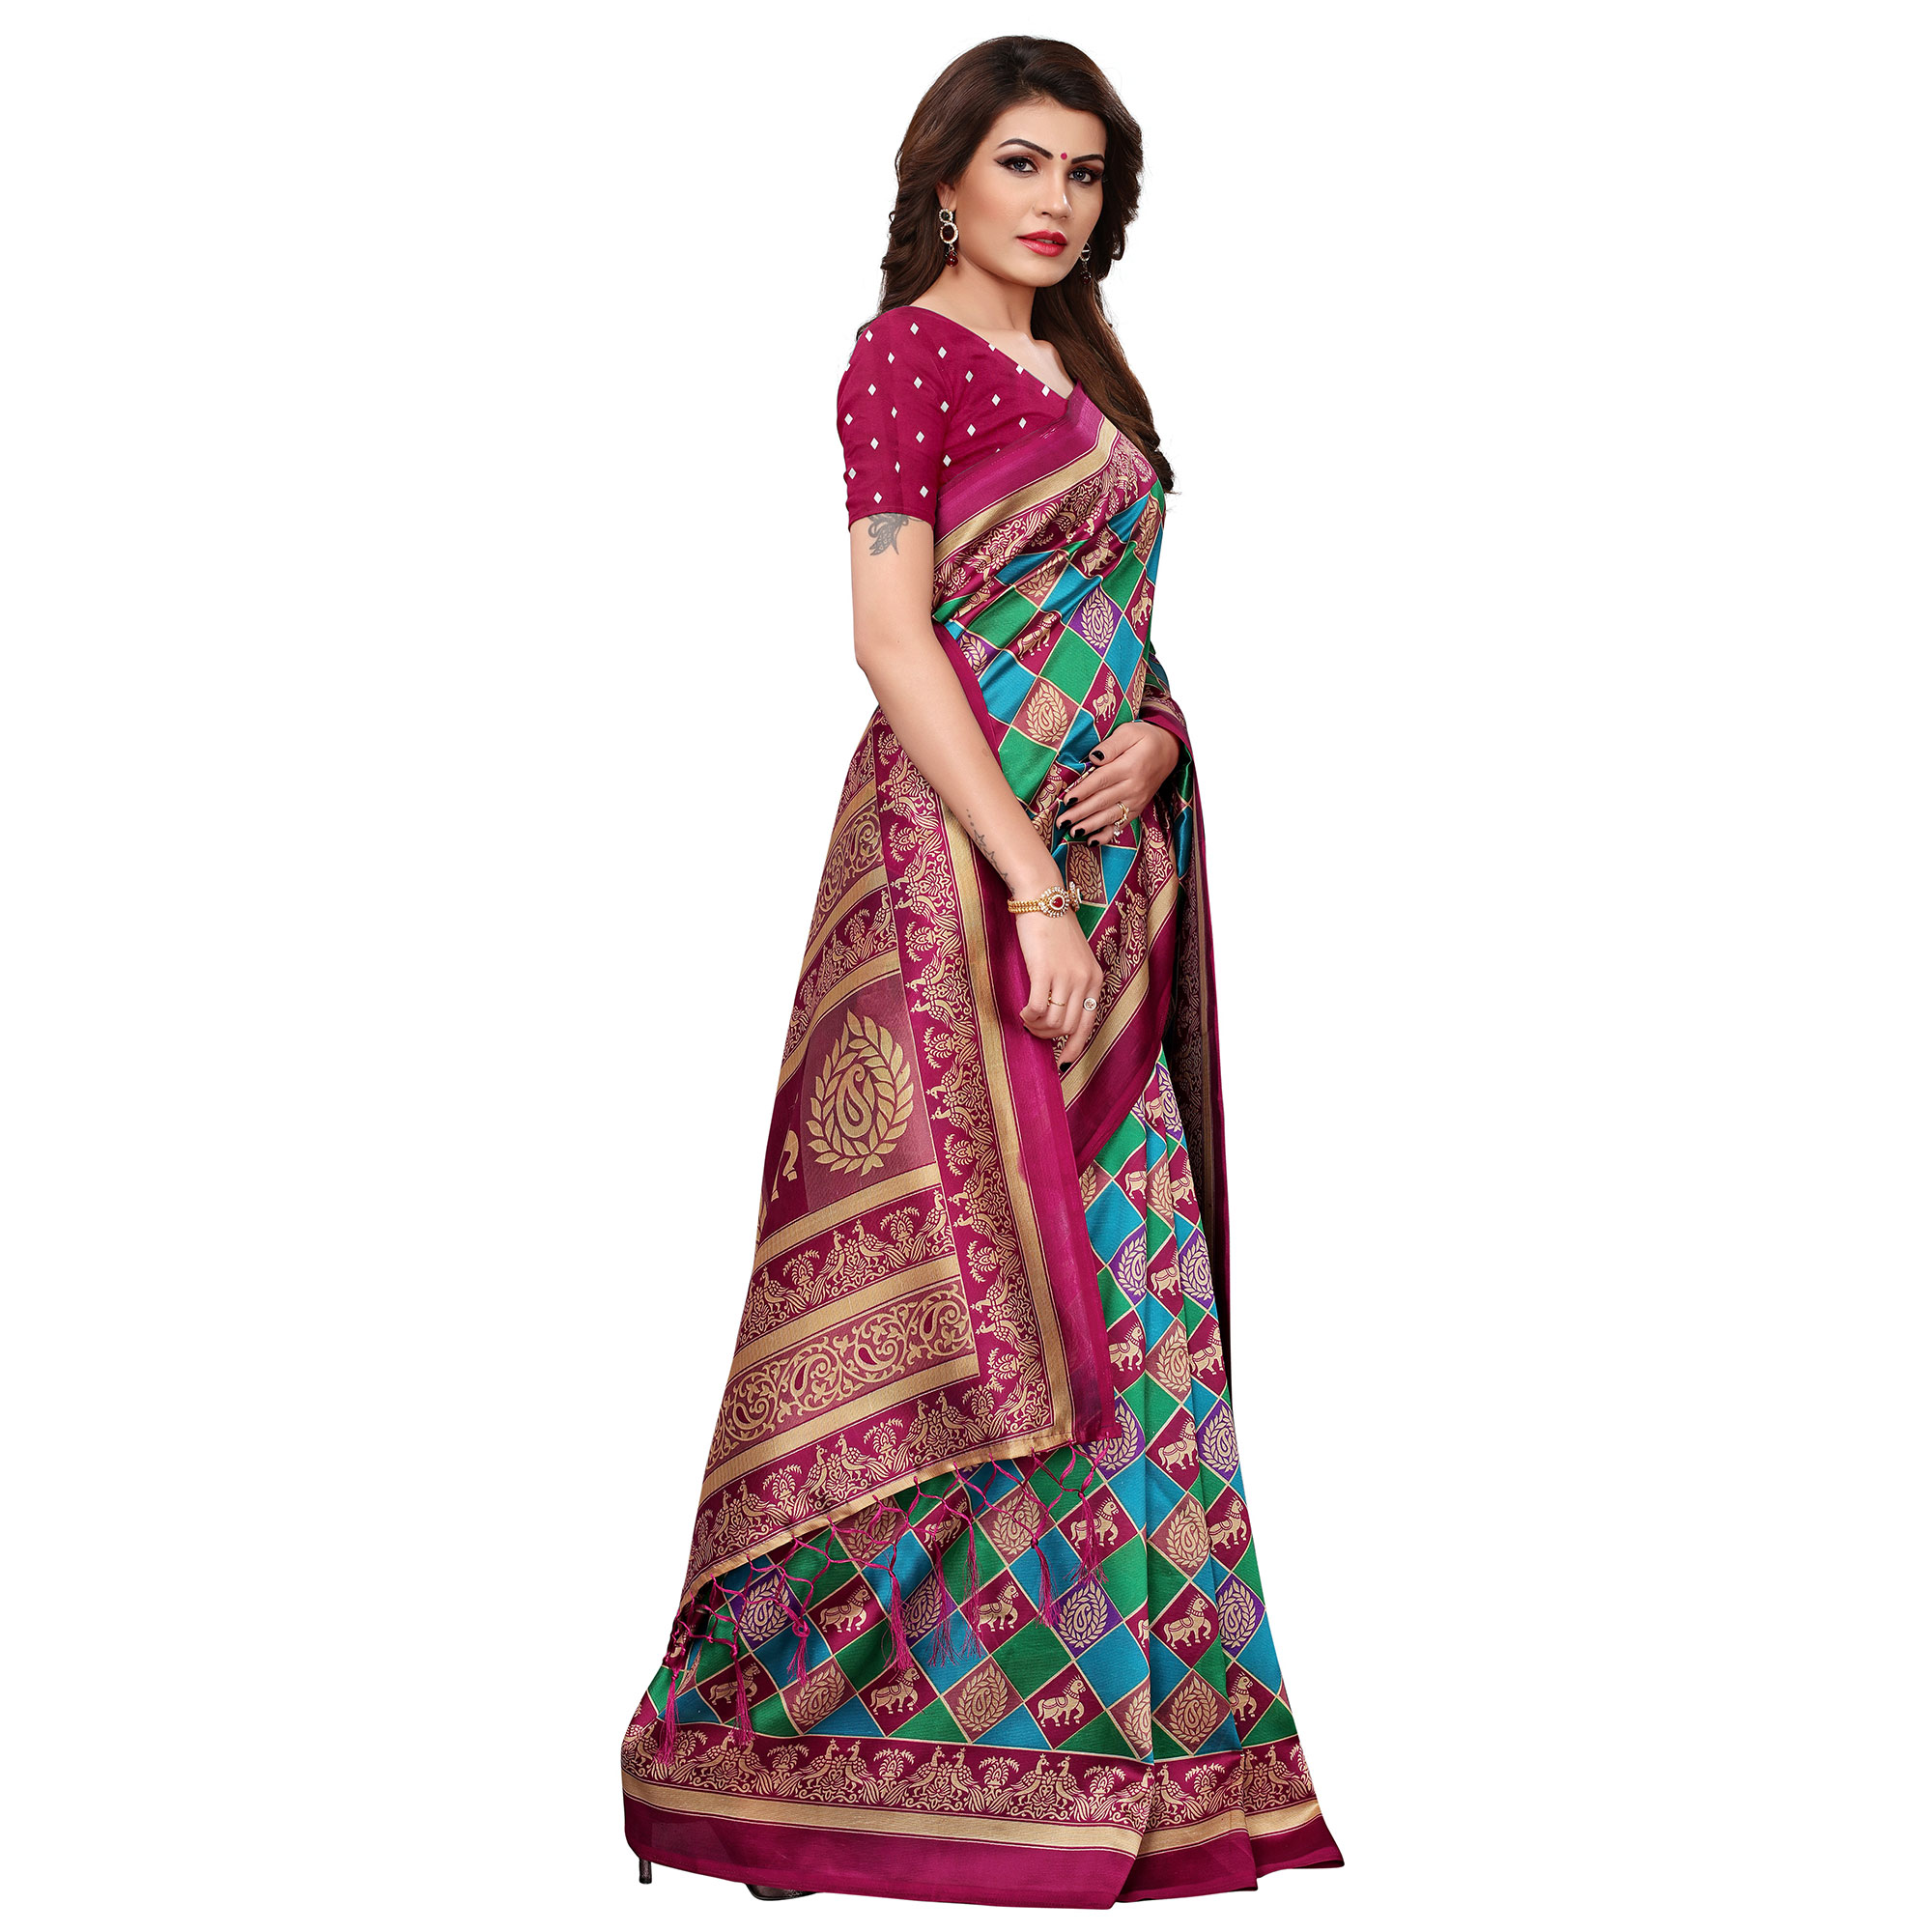 Mesmerising Blue-Pink Colored Festive Wear Printed Mysore Silk Saree